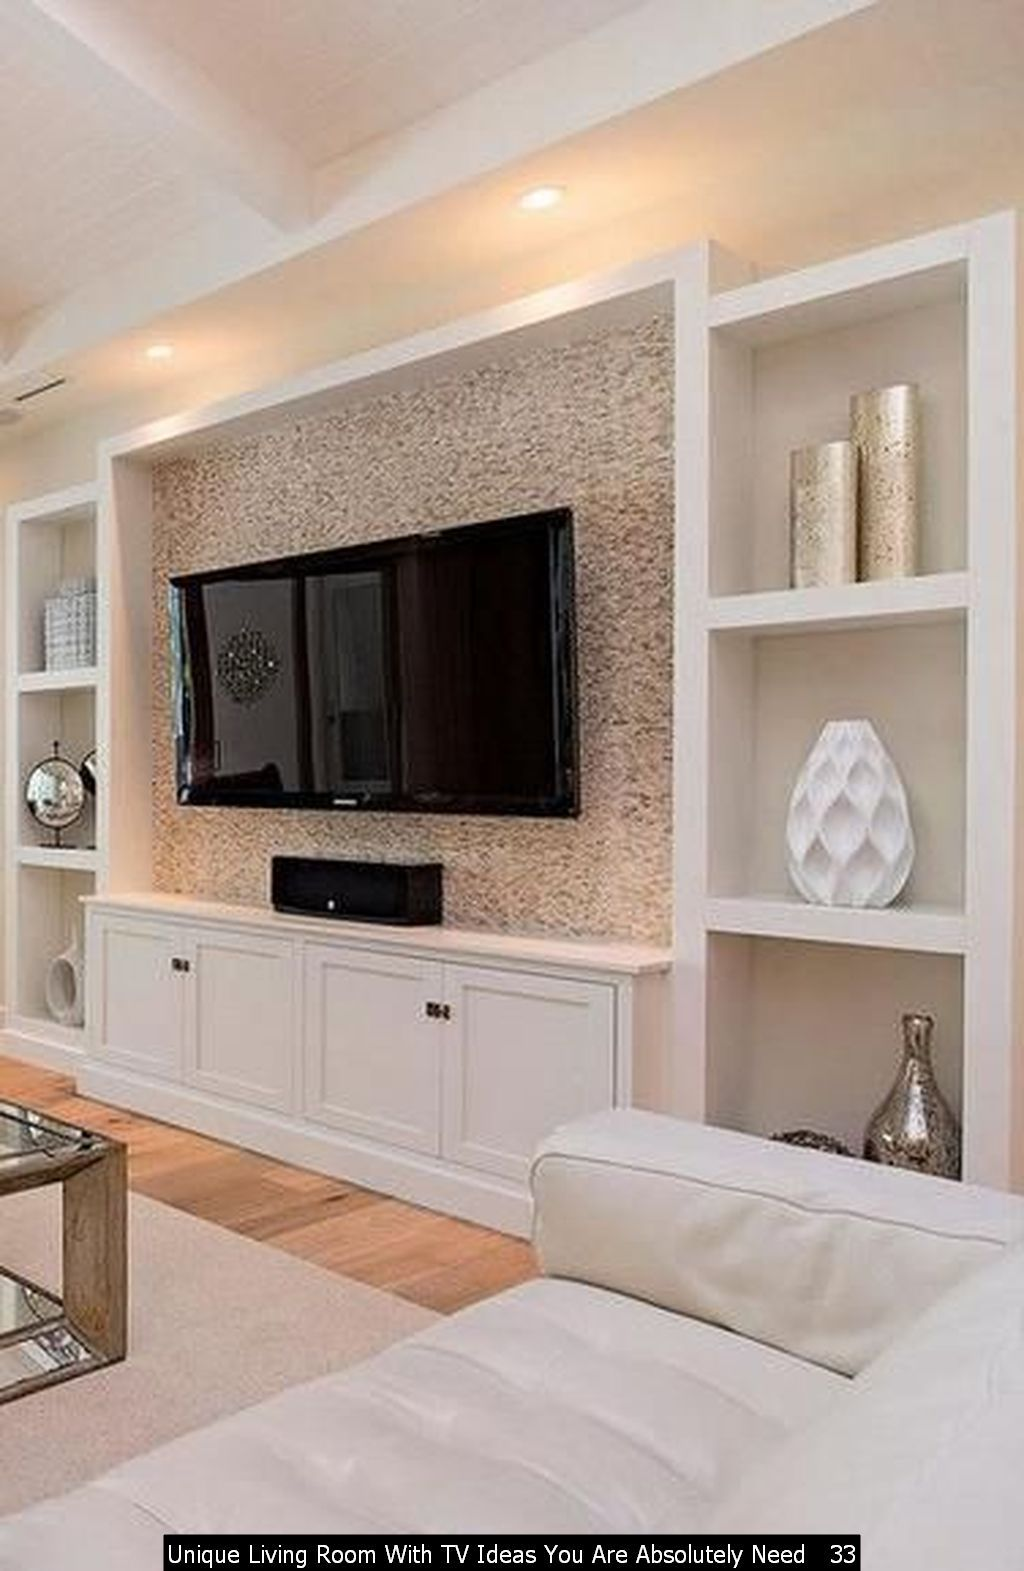 48 Unique Living Room With Tv Ideas You Are Absolutely Need Trenduhome Built In Wall Units Wall Unit Cheap Living Room Decor